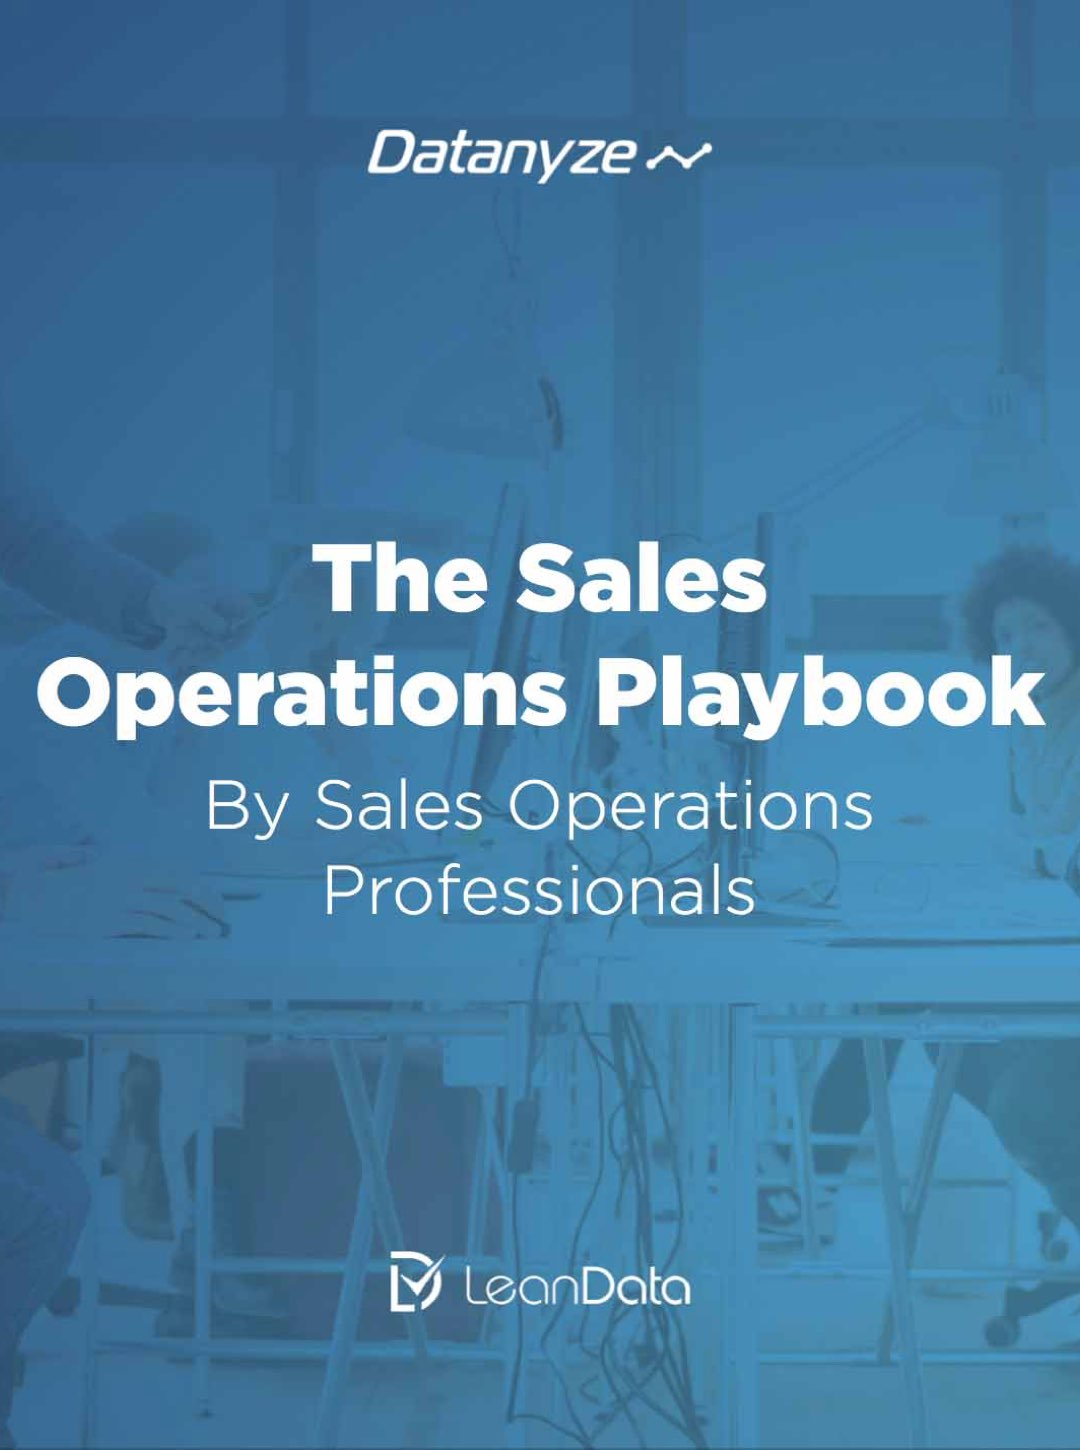 The Sales Operations Playbook